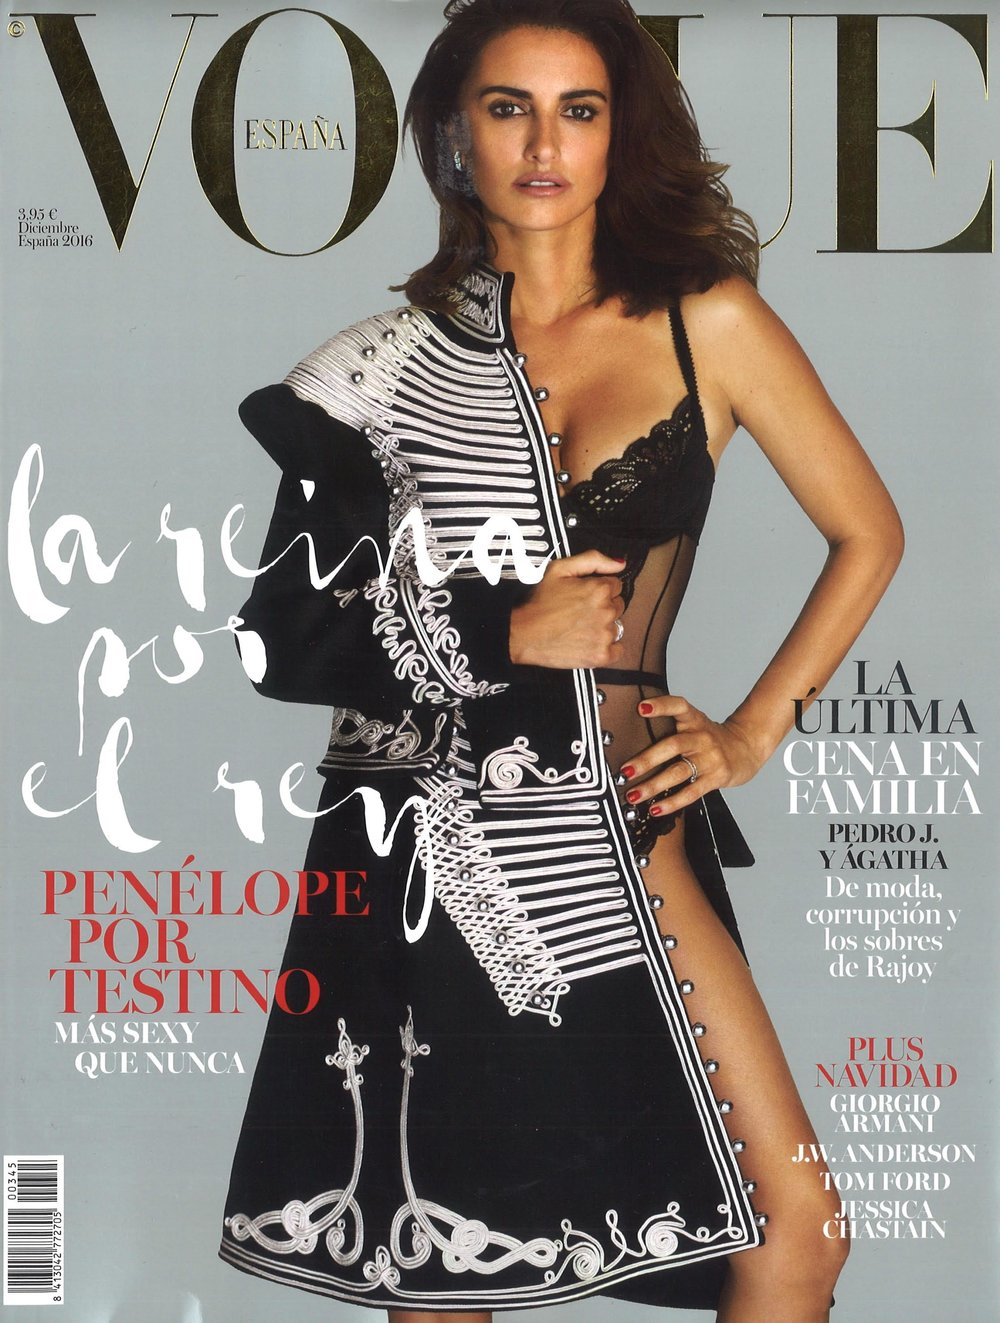 Vogue Spain Cover